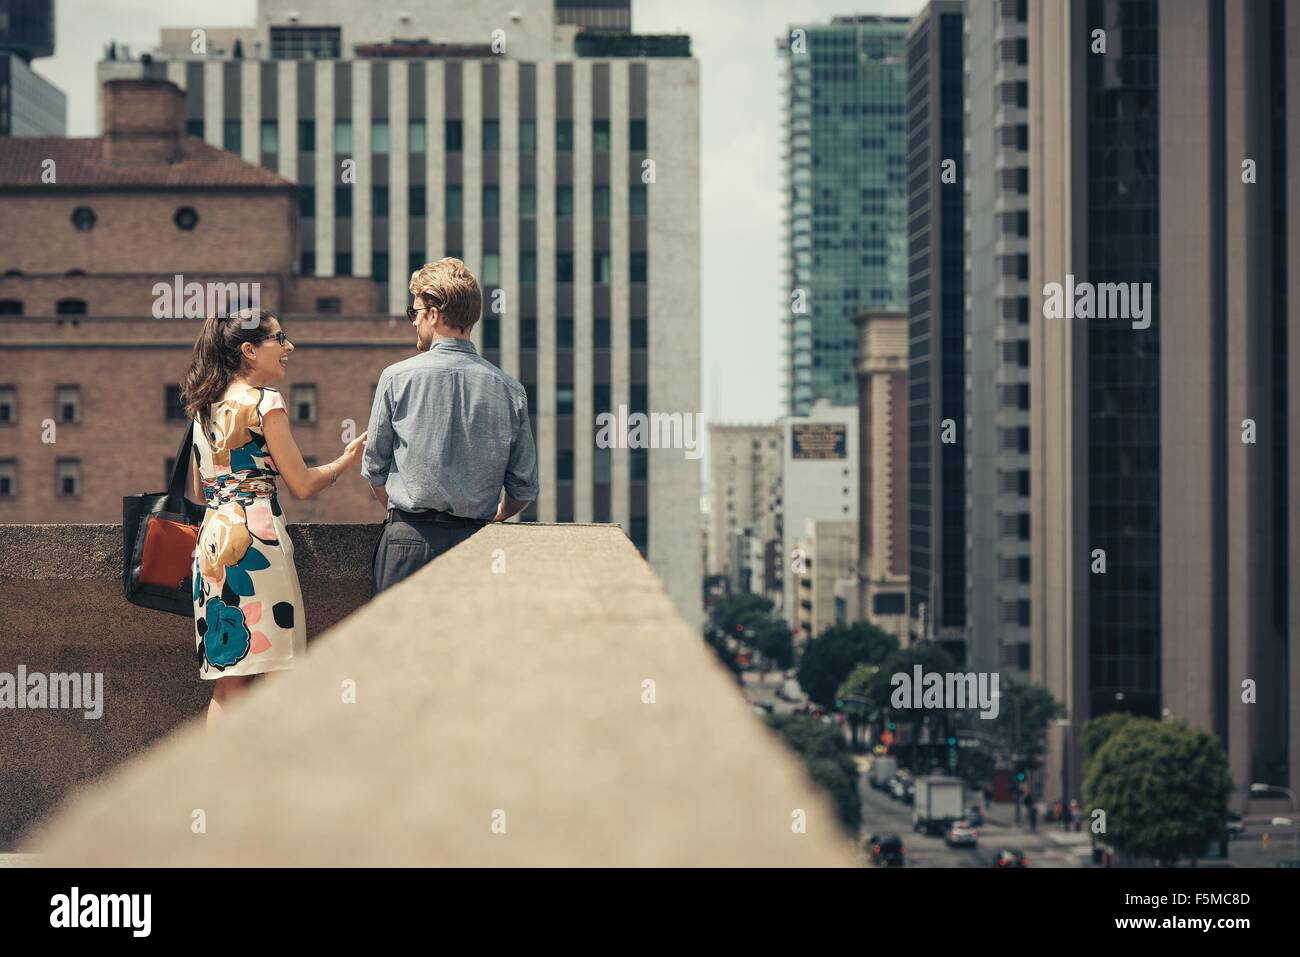 Businessman and Woman talking on rooftop, Los Angeles, USA Photo Stock